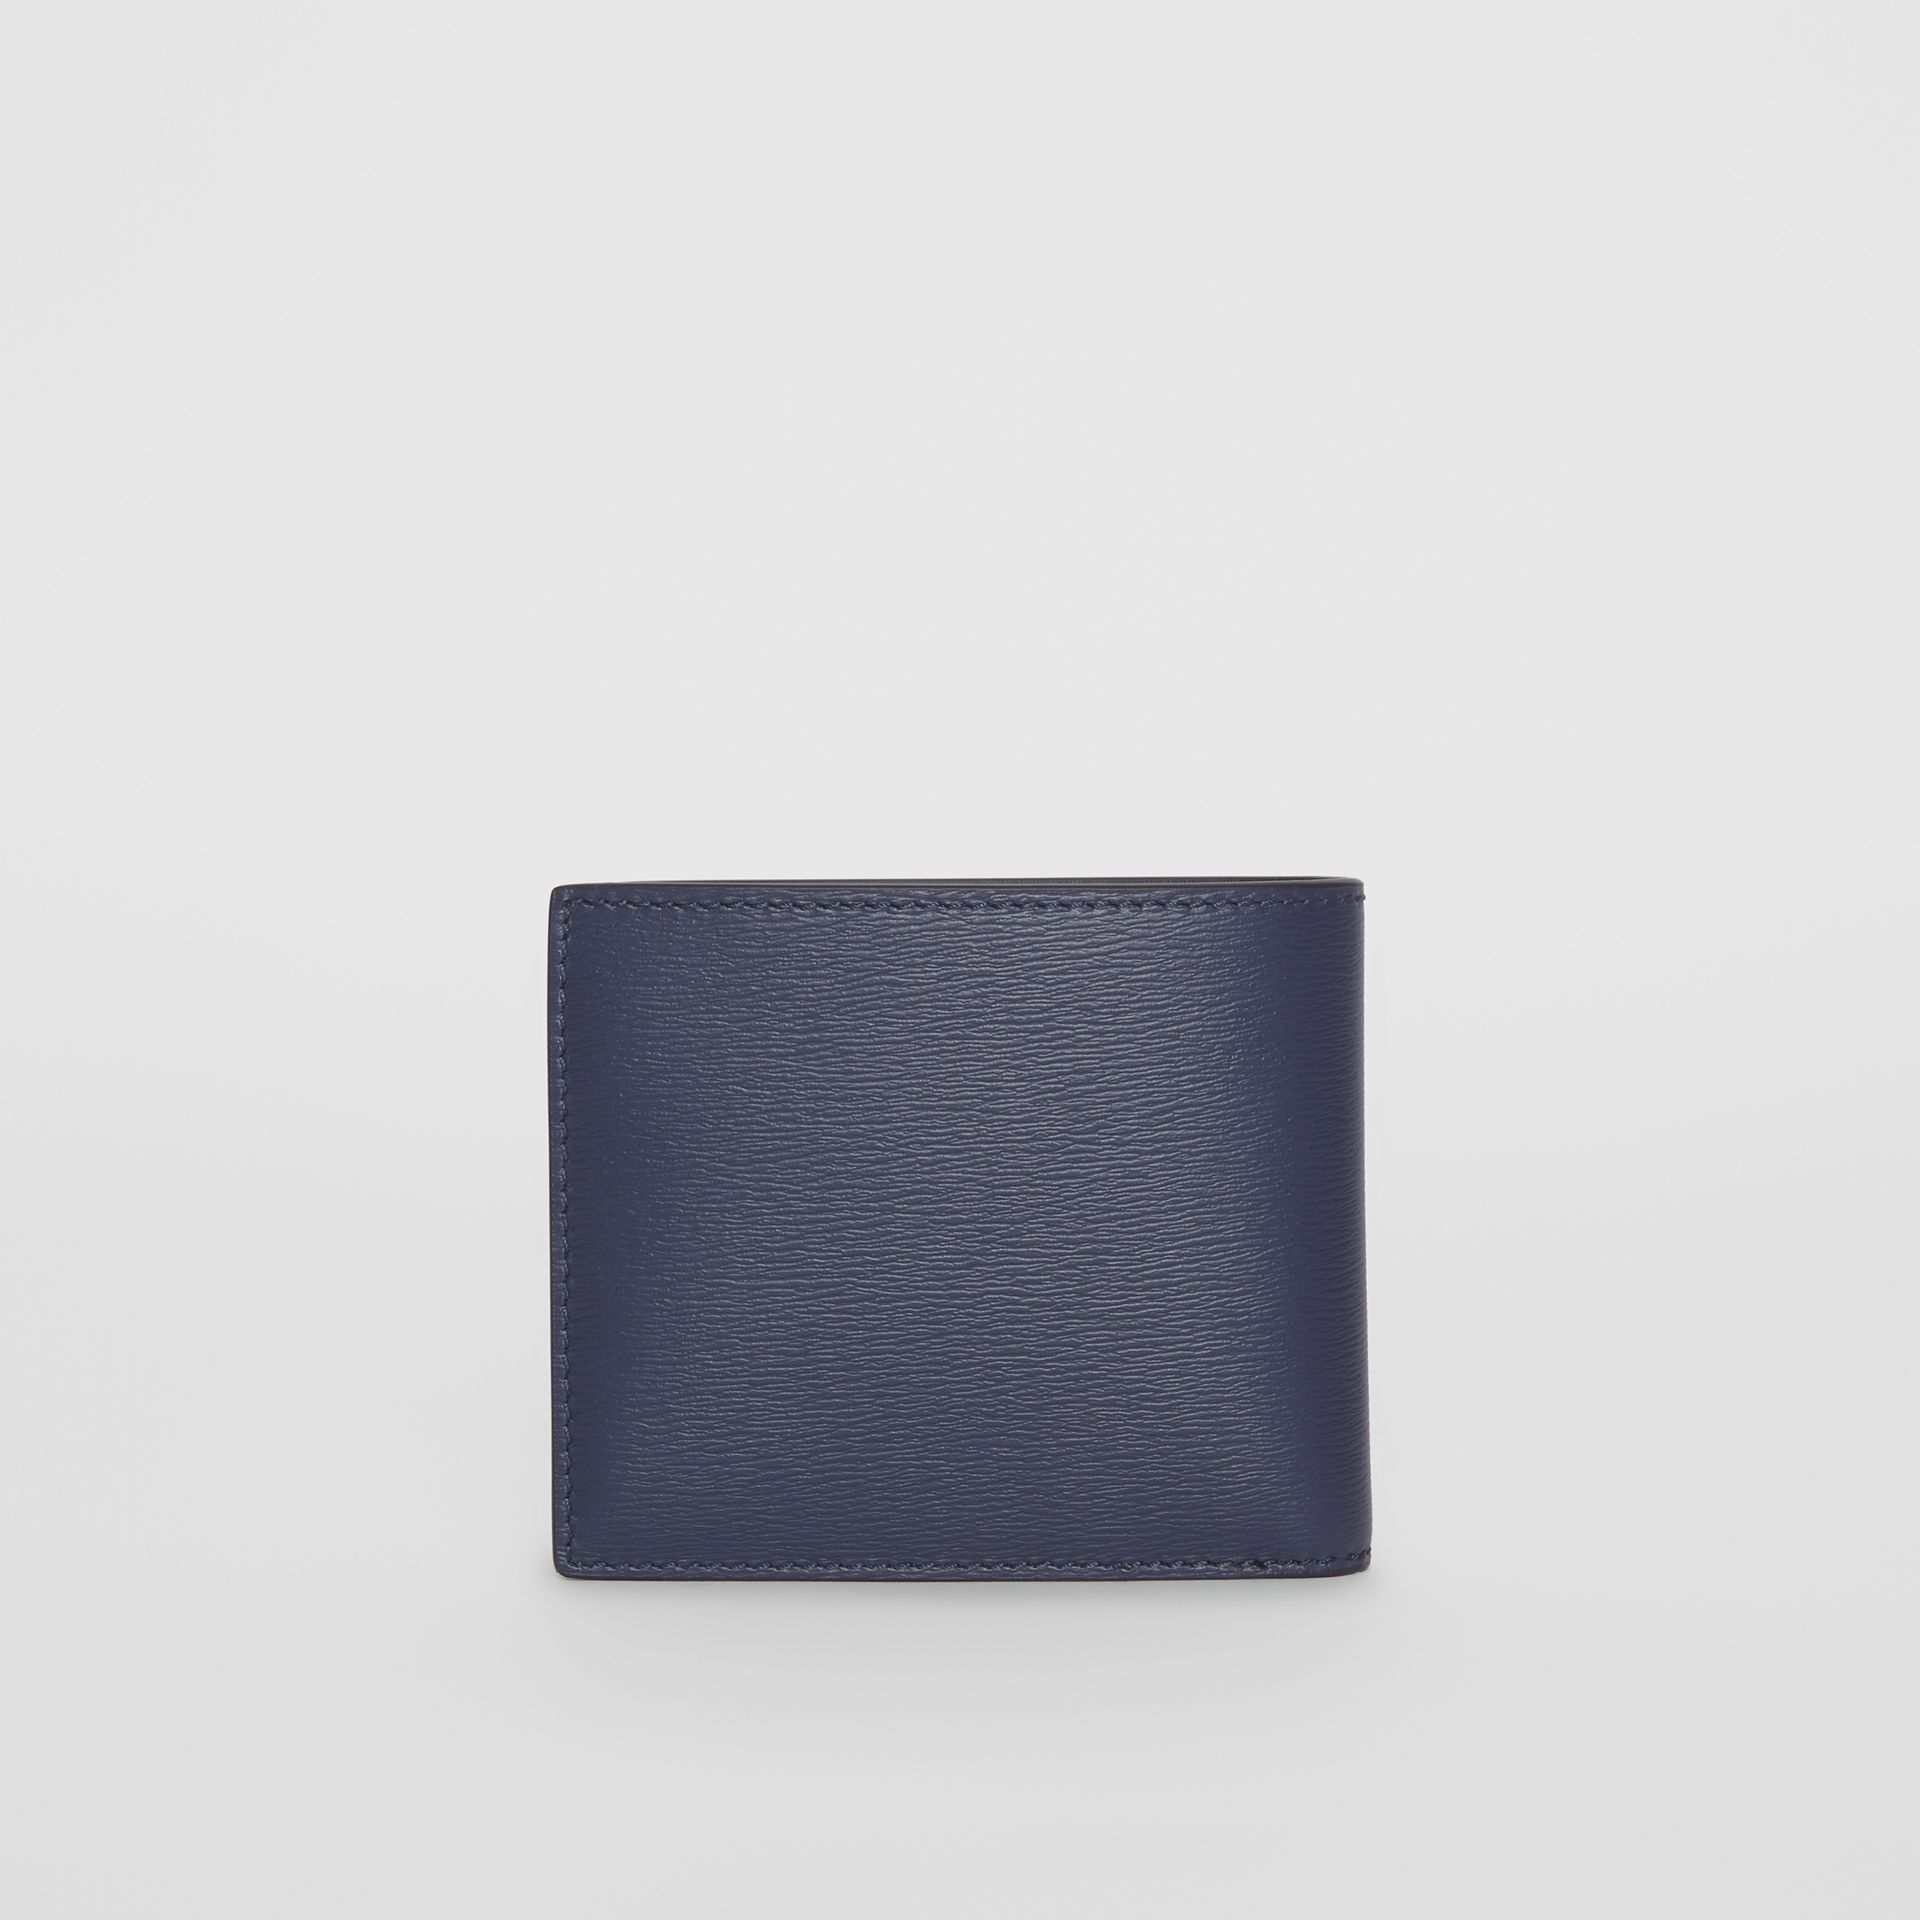 London Leather Bifold Wallet with ID Card Case in Navy - Men | Burberry Australia - gallery image 4